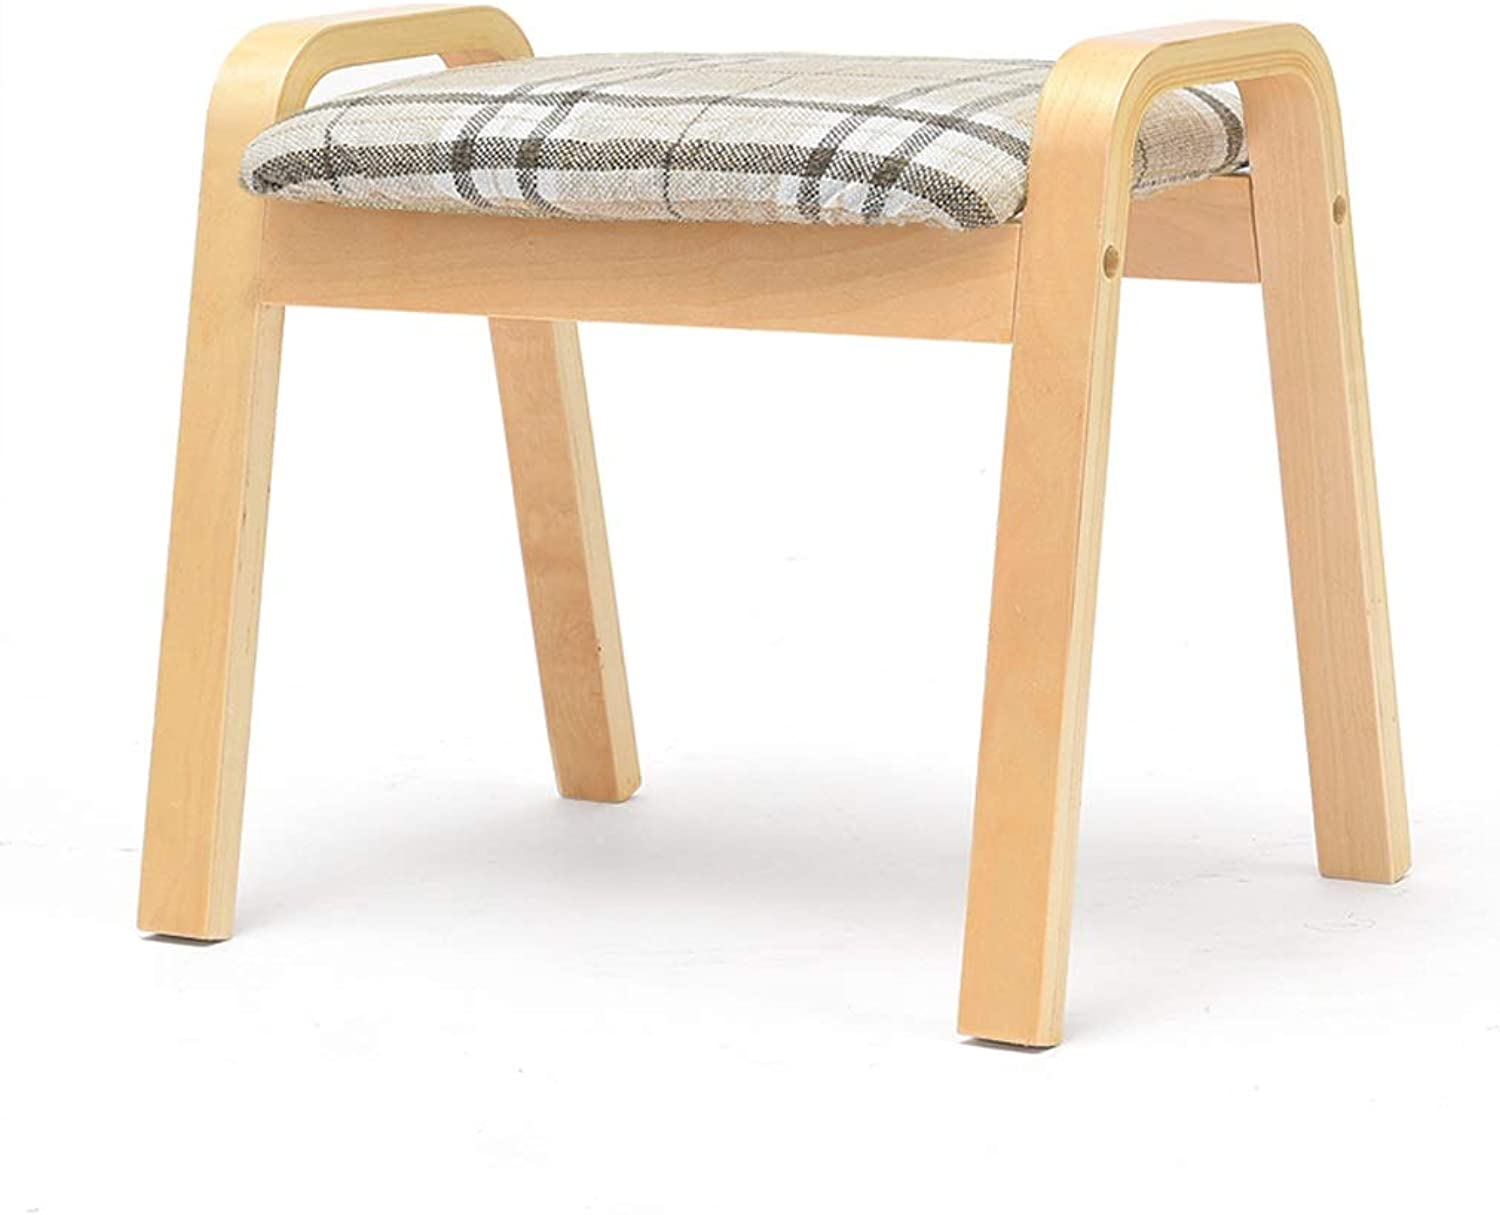 CQ Stripe Home Stool Creative Stool Living Room Adult Solid Wood Bench Fabric Stool Sofa Change shoes Bench